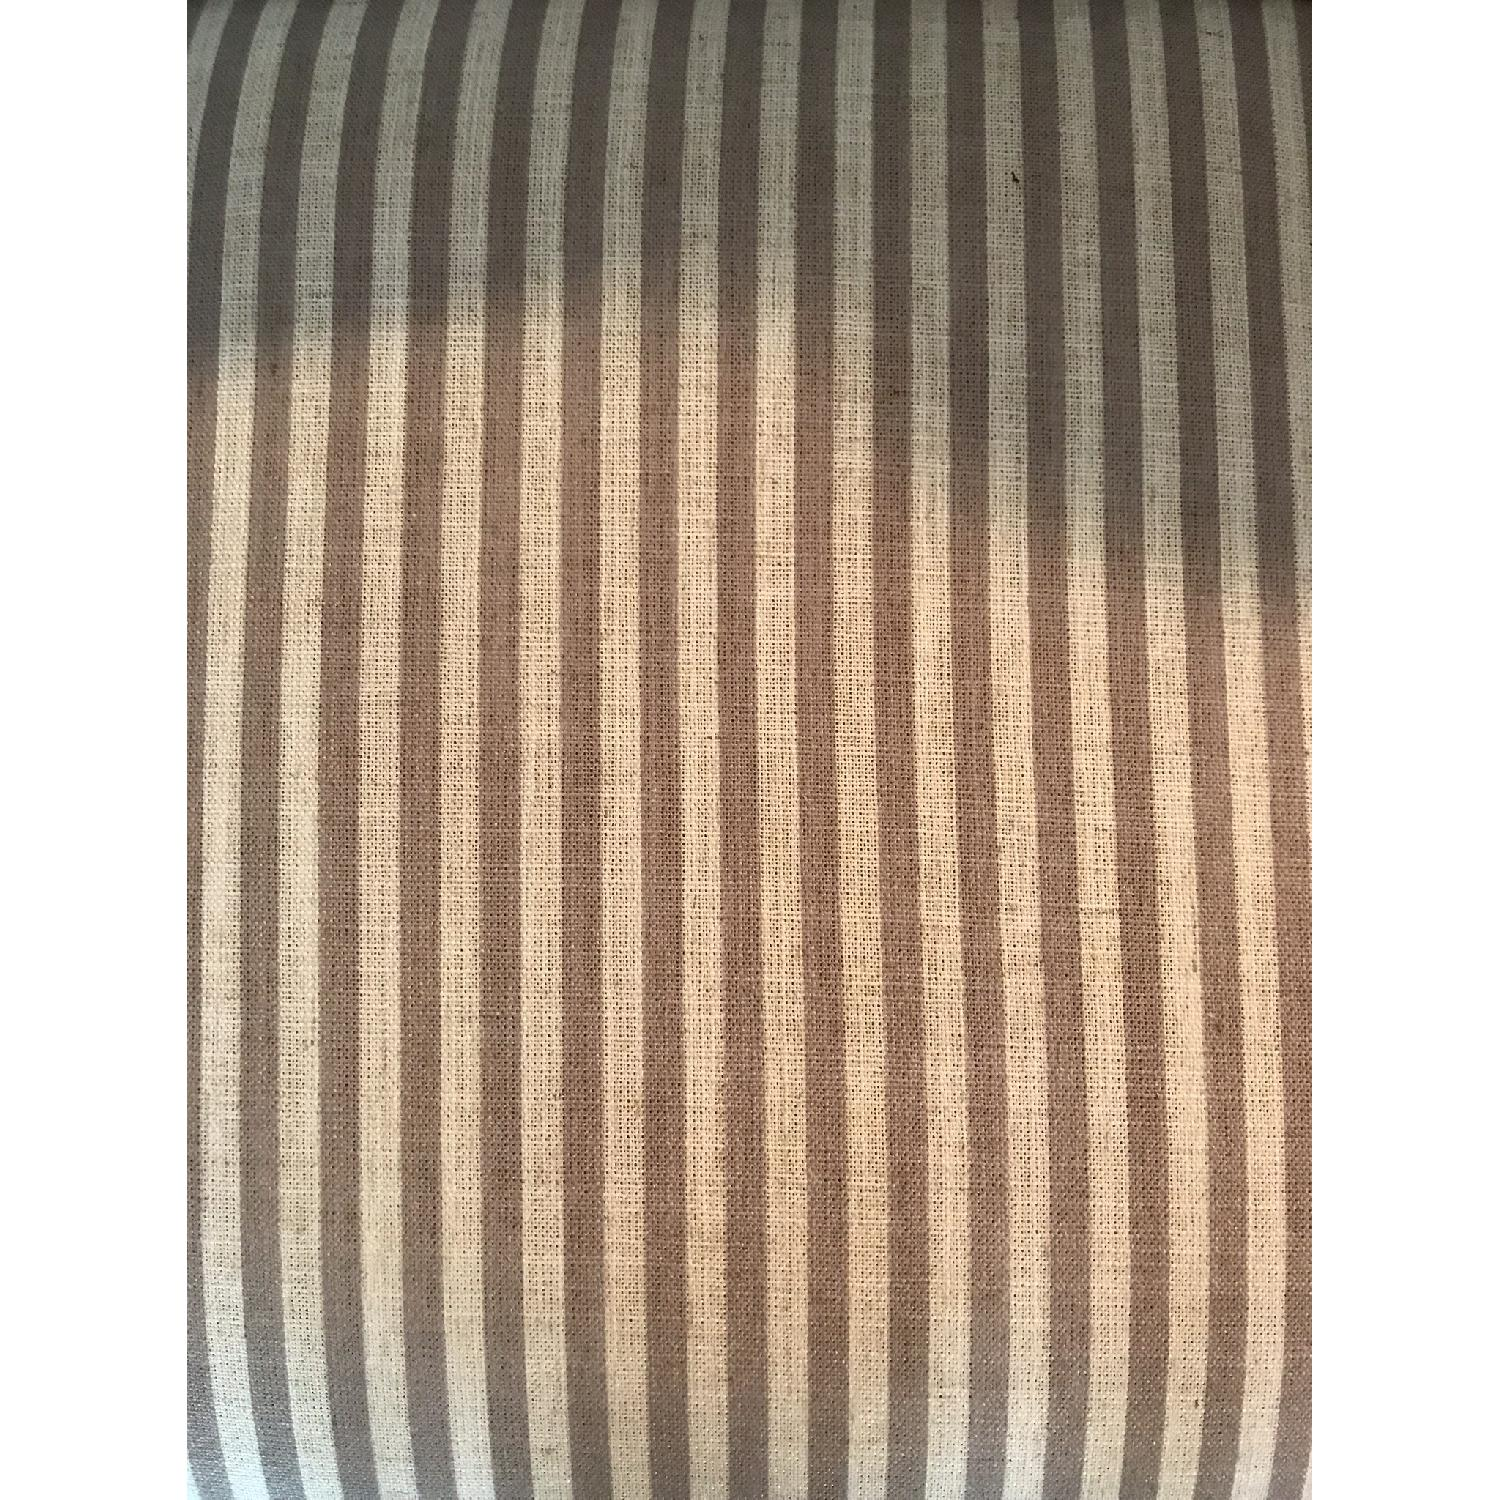 One Allium Way Striped Parsons Dining Chairs-2